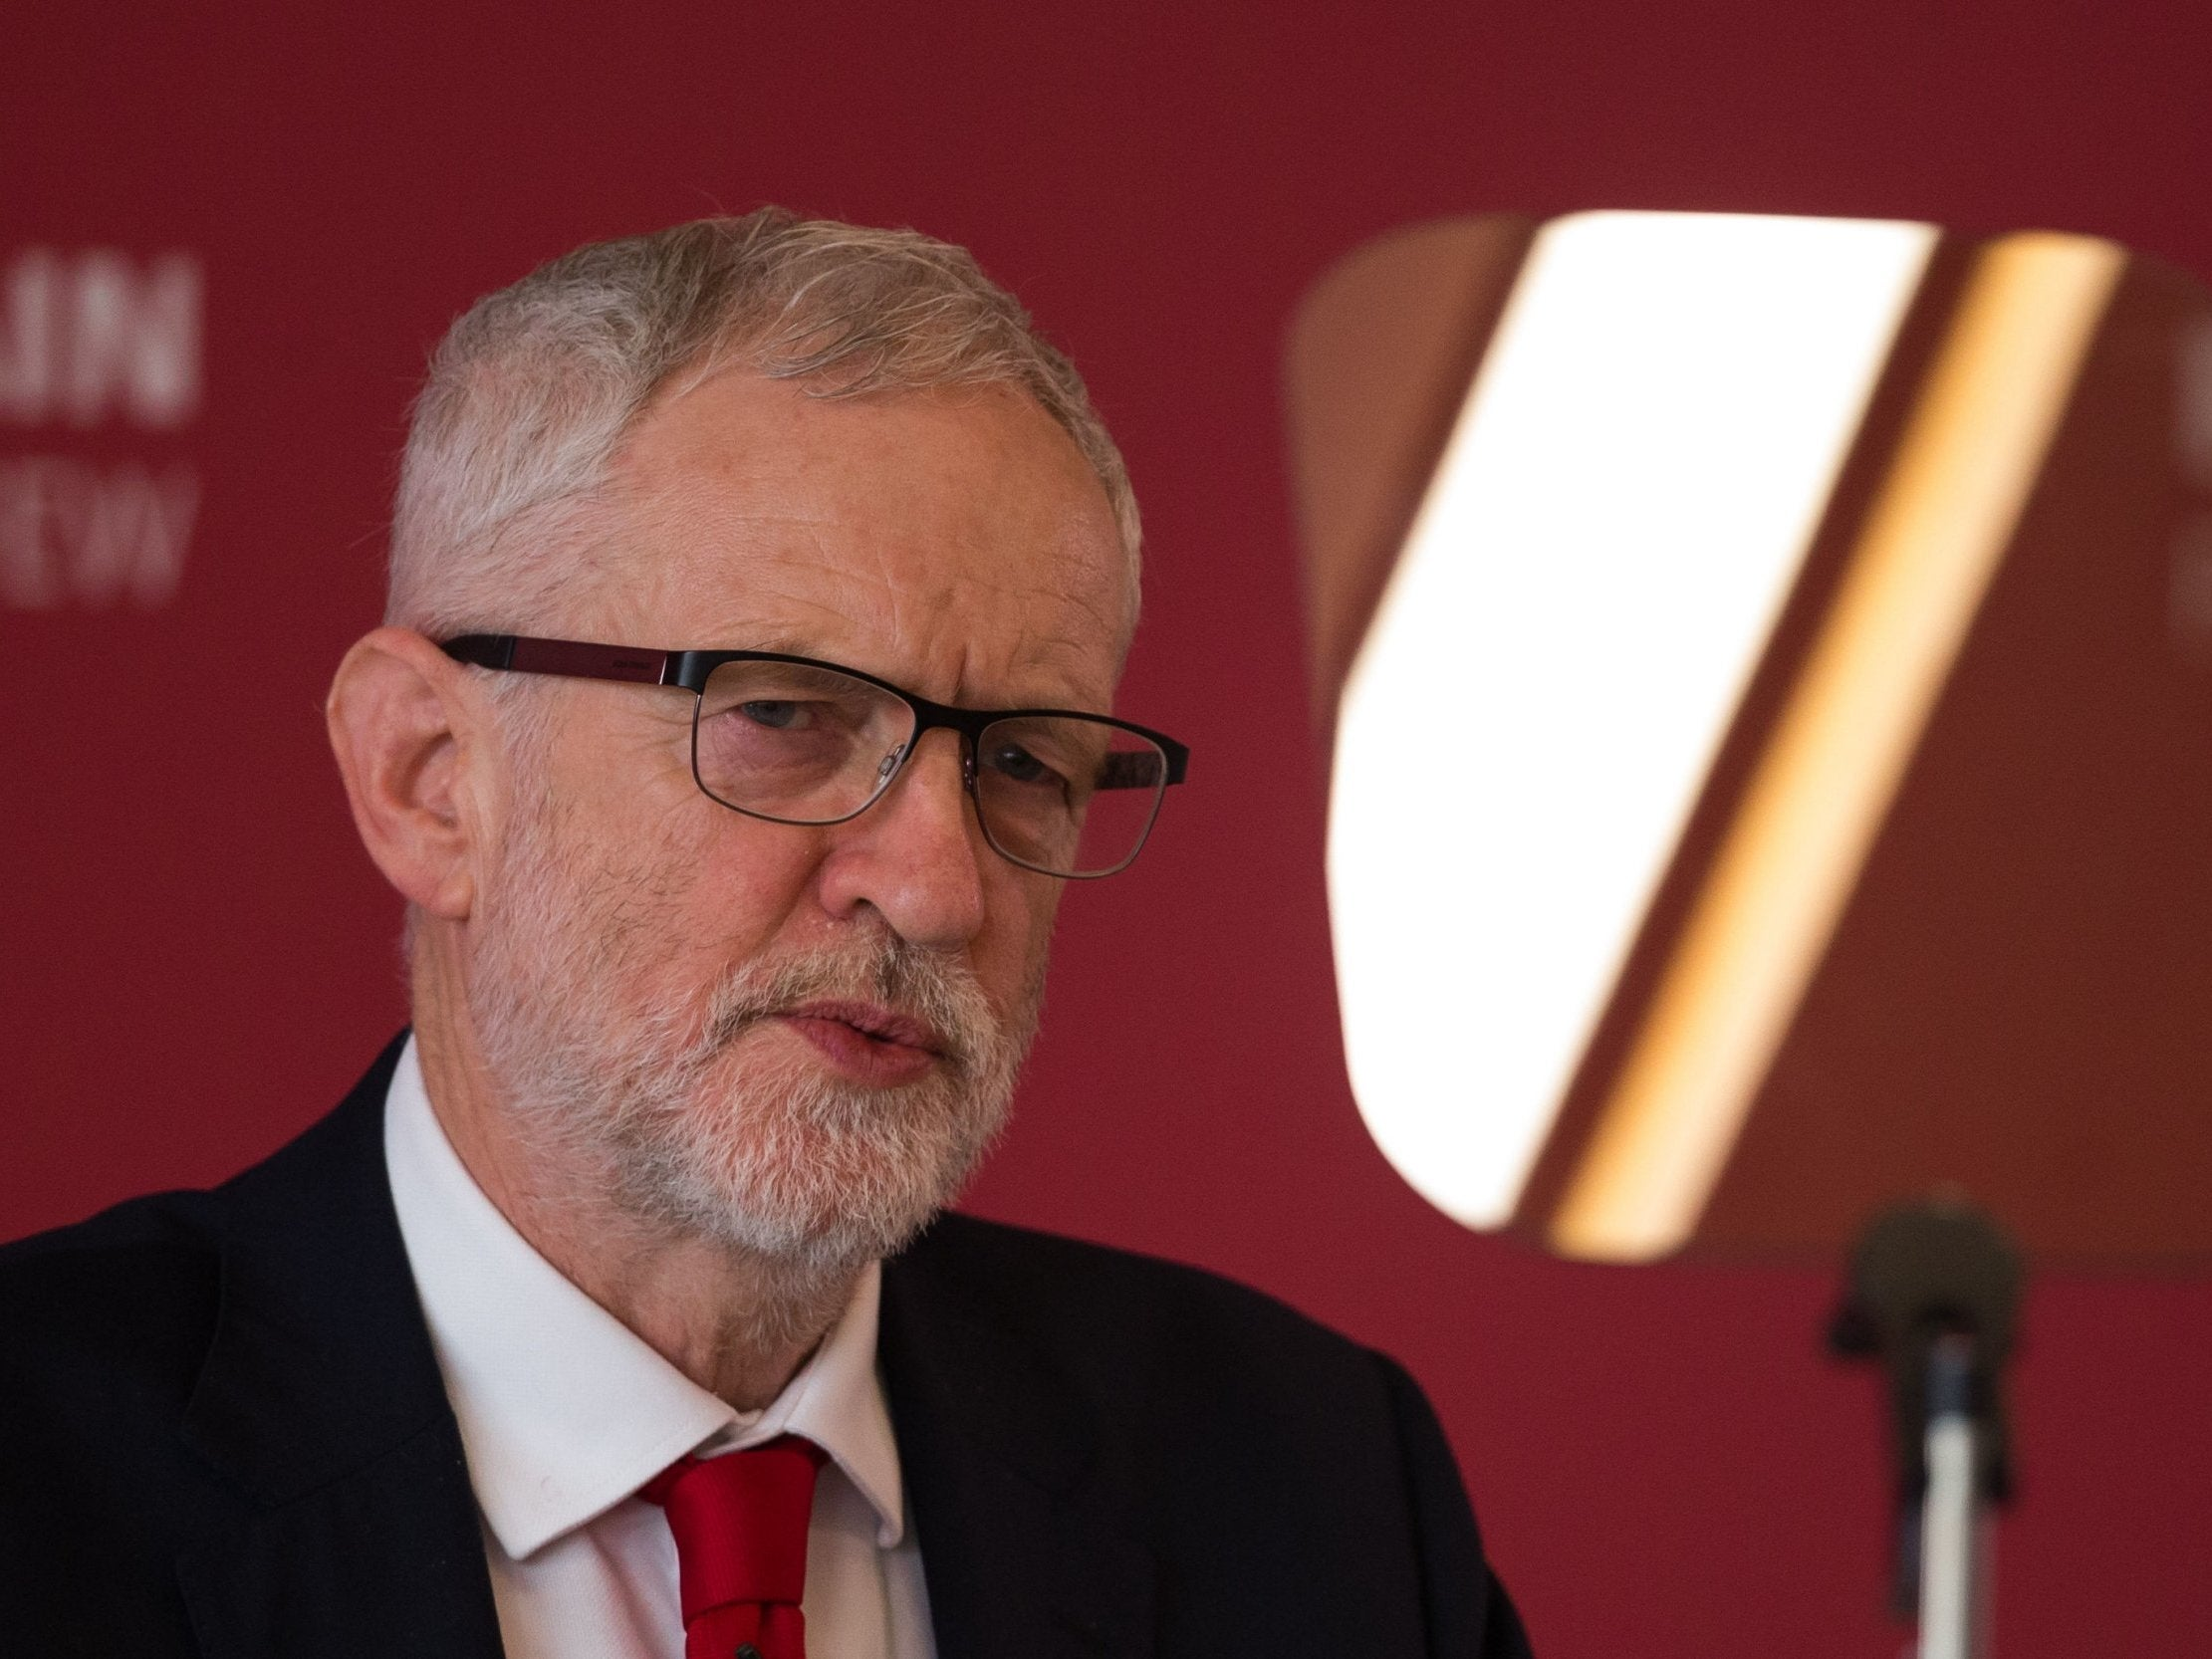 Independent group LIVE - 'Change, or more will follow': Watson warns Corbyn more Labour MPs preparing to quit